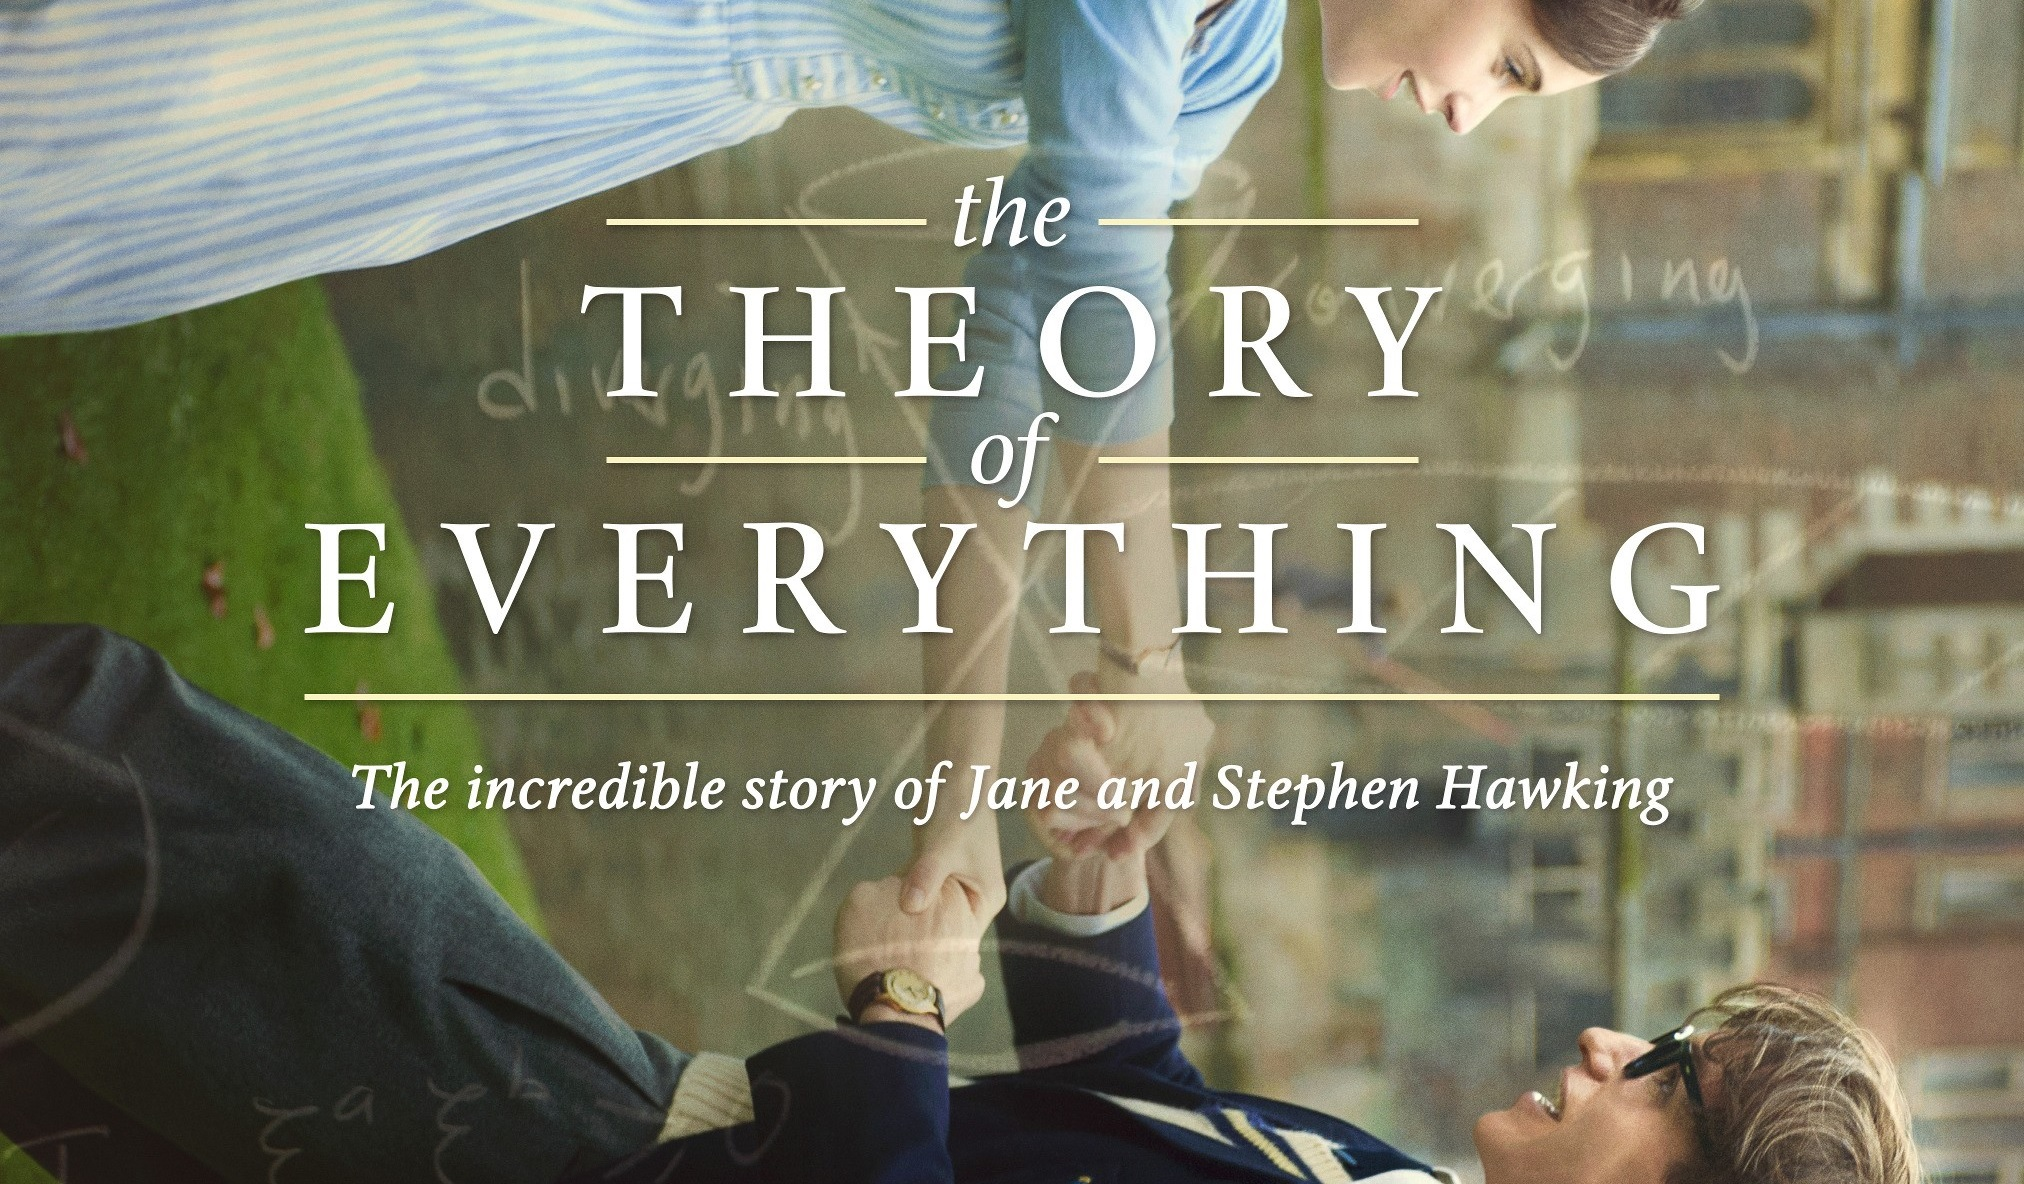 Theory of everything, film dedicat lui Stephen Hawking